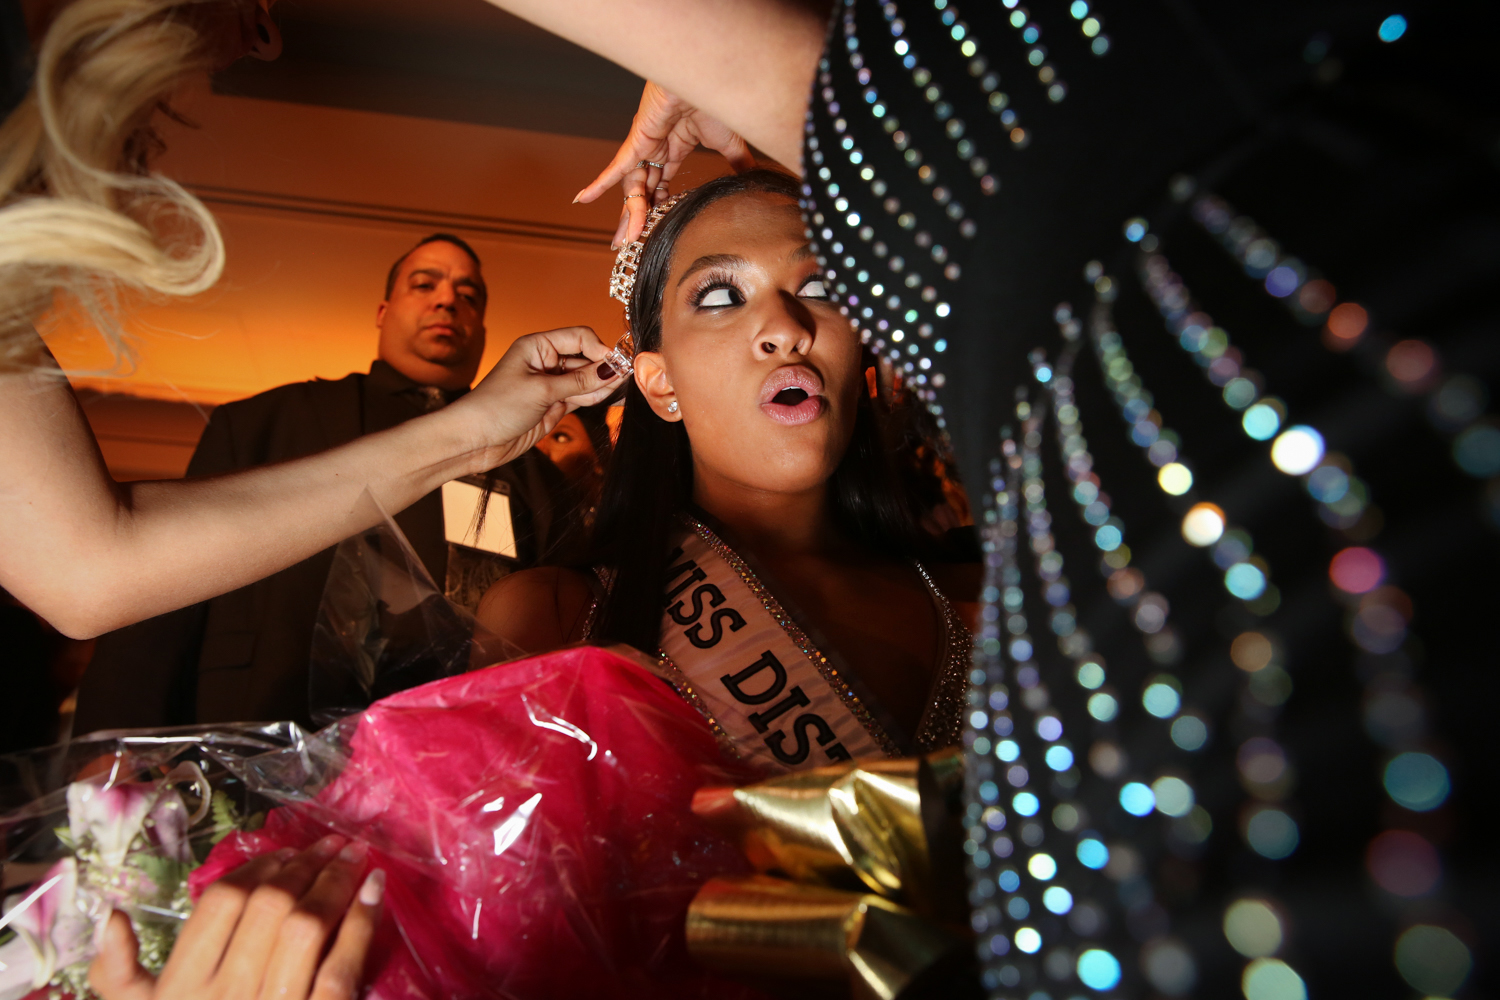 The newly crowned Miss D.C. USA, Bryce Armstrong, has her tiara adjusted before her first official photos. (Amanda Andrade-Rhoades/DC Refined)